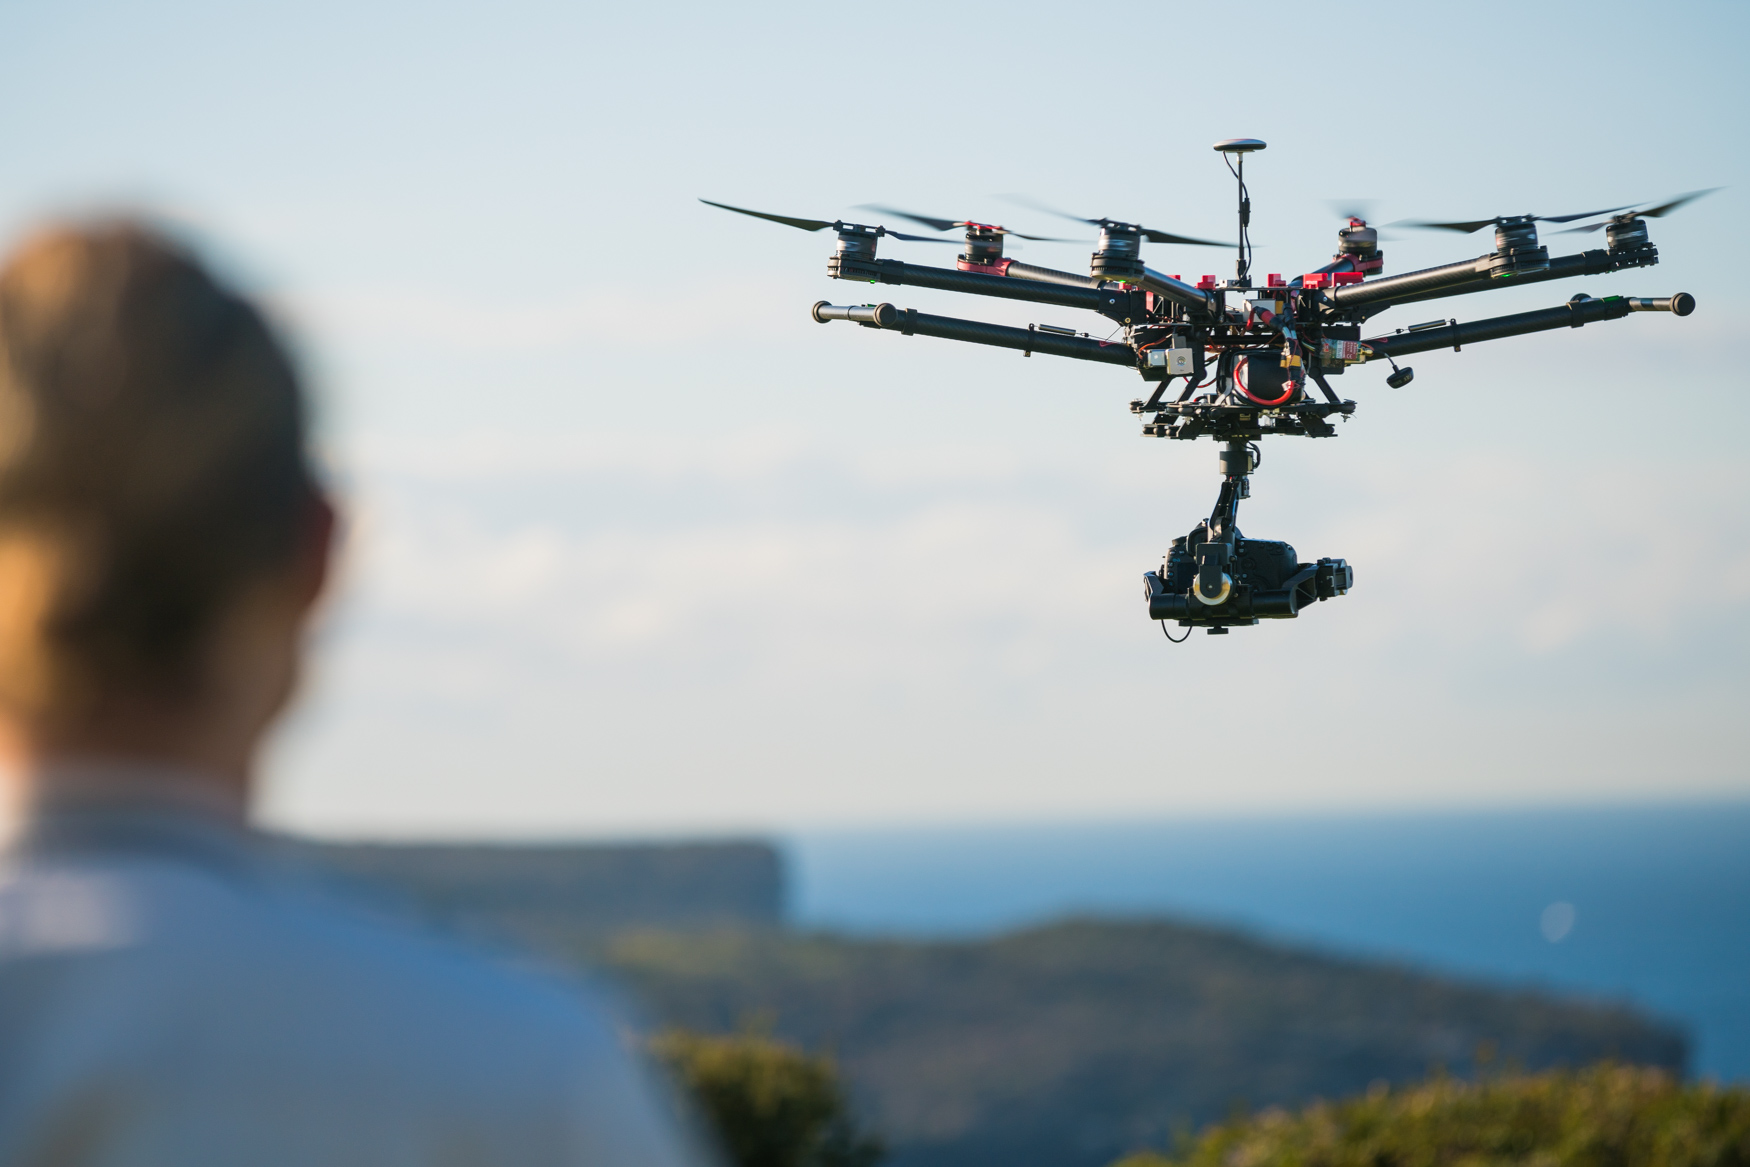 Insurance and Safety - We hold the safe operations of our drones as the number one priority in undertaking our day-to-day work. We have been certified by CASA since 2013 holding the Unmanned Operators Certificate UOC.CASA.0109.We have a number of exemptions and area approvals that allow us a greater scope of operations than many other drone companies. Public liability insurance to the amount of $20 million is held to cover all of our operations and project stakeholders in the unlikely event of an incident.